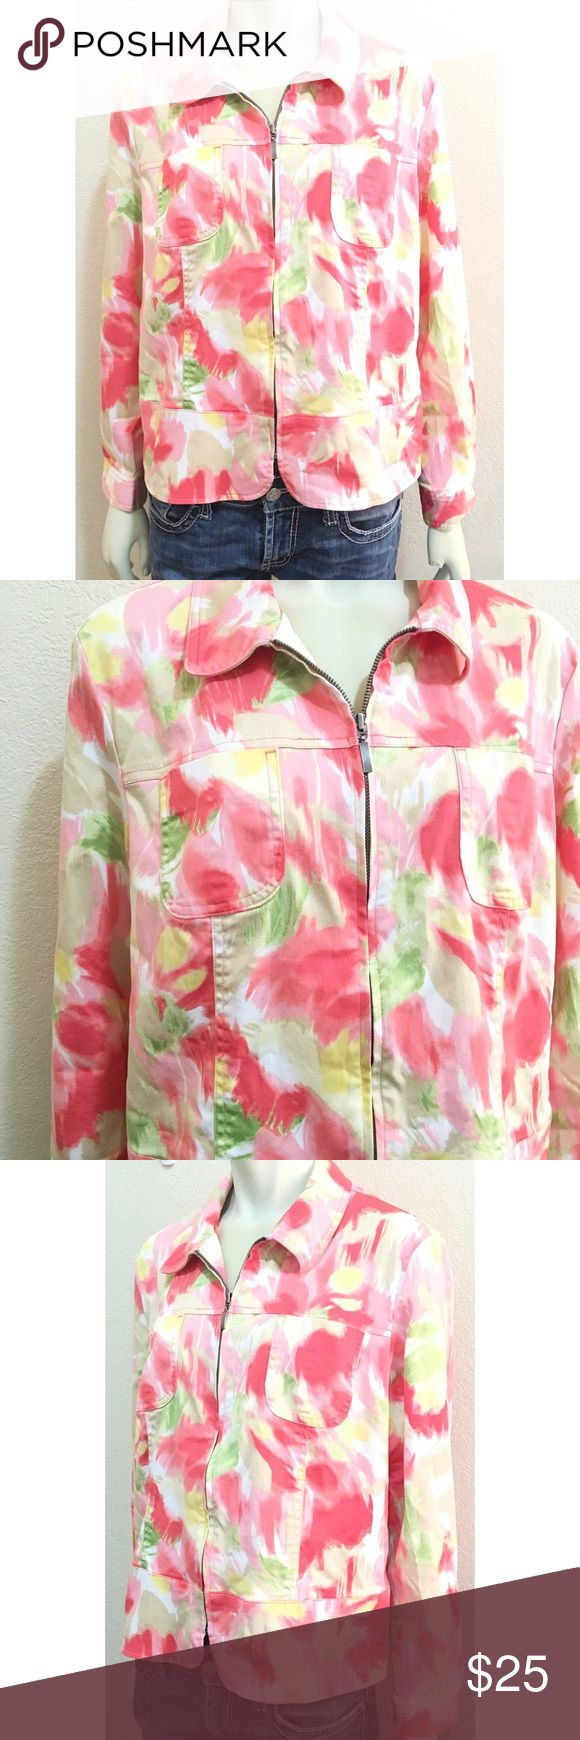 """JM Collection Size 14 Floral Zip Up Jacket GUC floral zip up jacket by JM Collection. Two flaws - missing the buttons at the wrist cuffs (you can roll up or replace the buttons) and has a very thin two inch long gray mark on the front left upper arm. I have not attempted to clean this and there is a very good chance it will come out in the wash. 64% cotton/33% nylon/3% spandex. Measurements (all approximates): neck to bottom hem length 23"""", armpit to wrist 17"""", armpit to armpit lying flat…"""